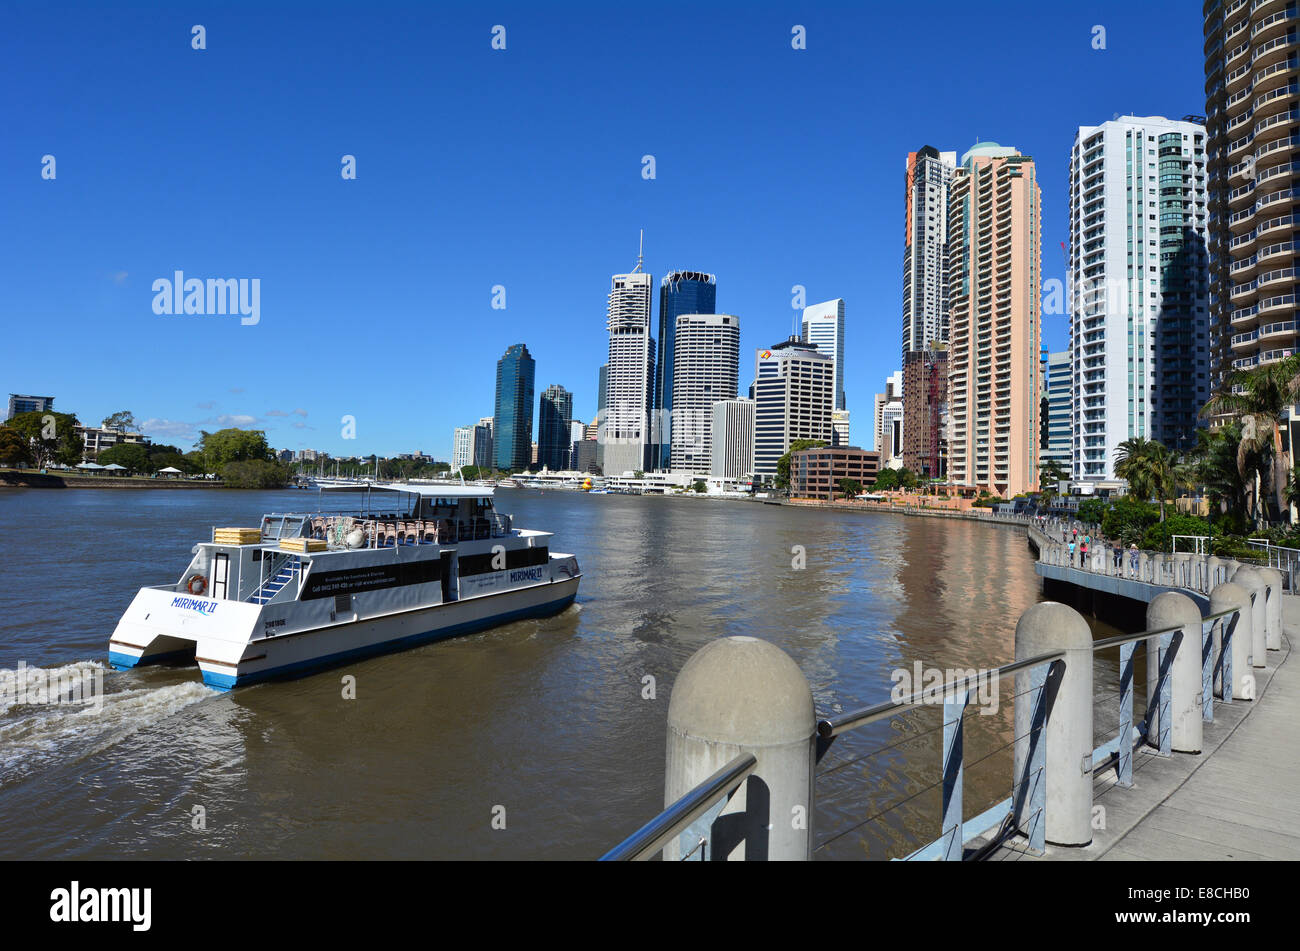 BRISBANE, AUS - SEP 26 2014: Ferry cruise at Little Singapore, Brisbane Riverside Quarter. It's home to some of - Stock Image